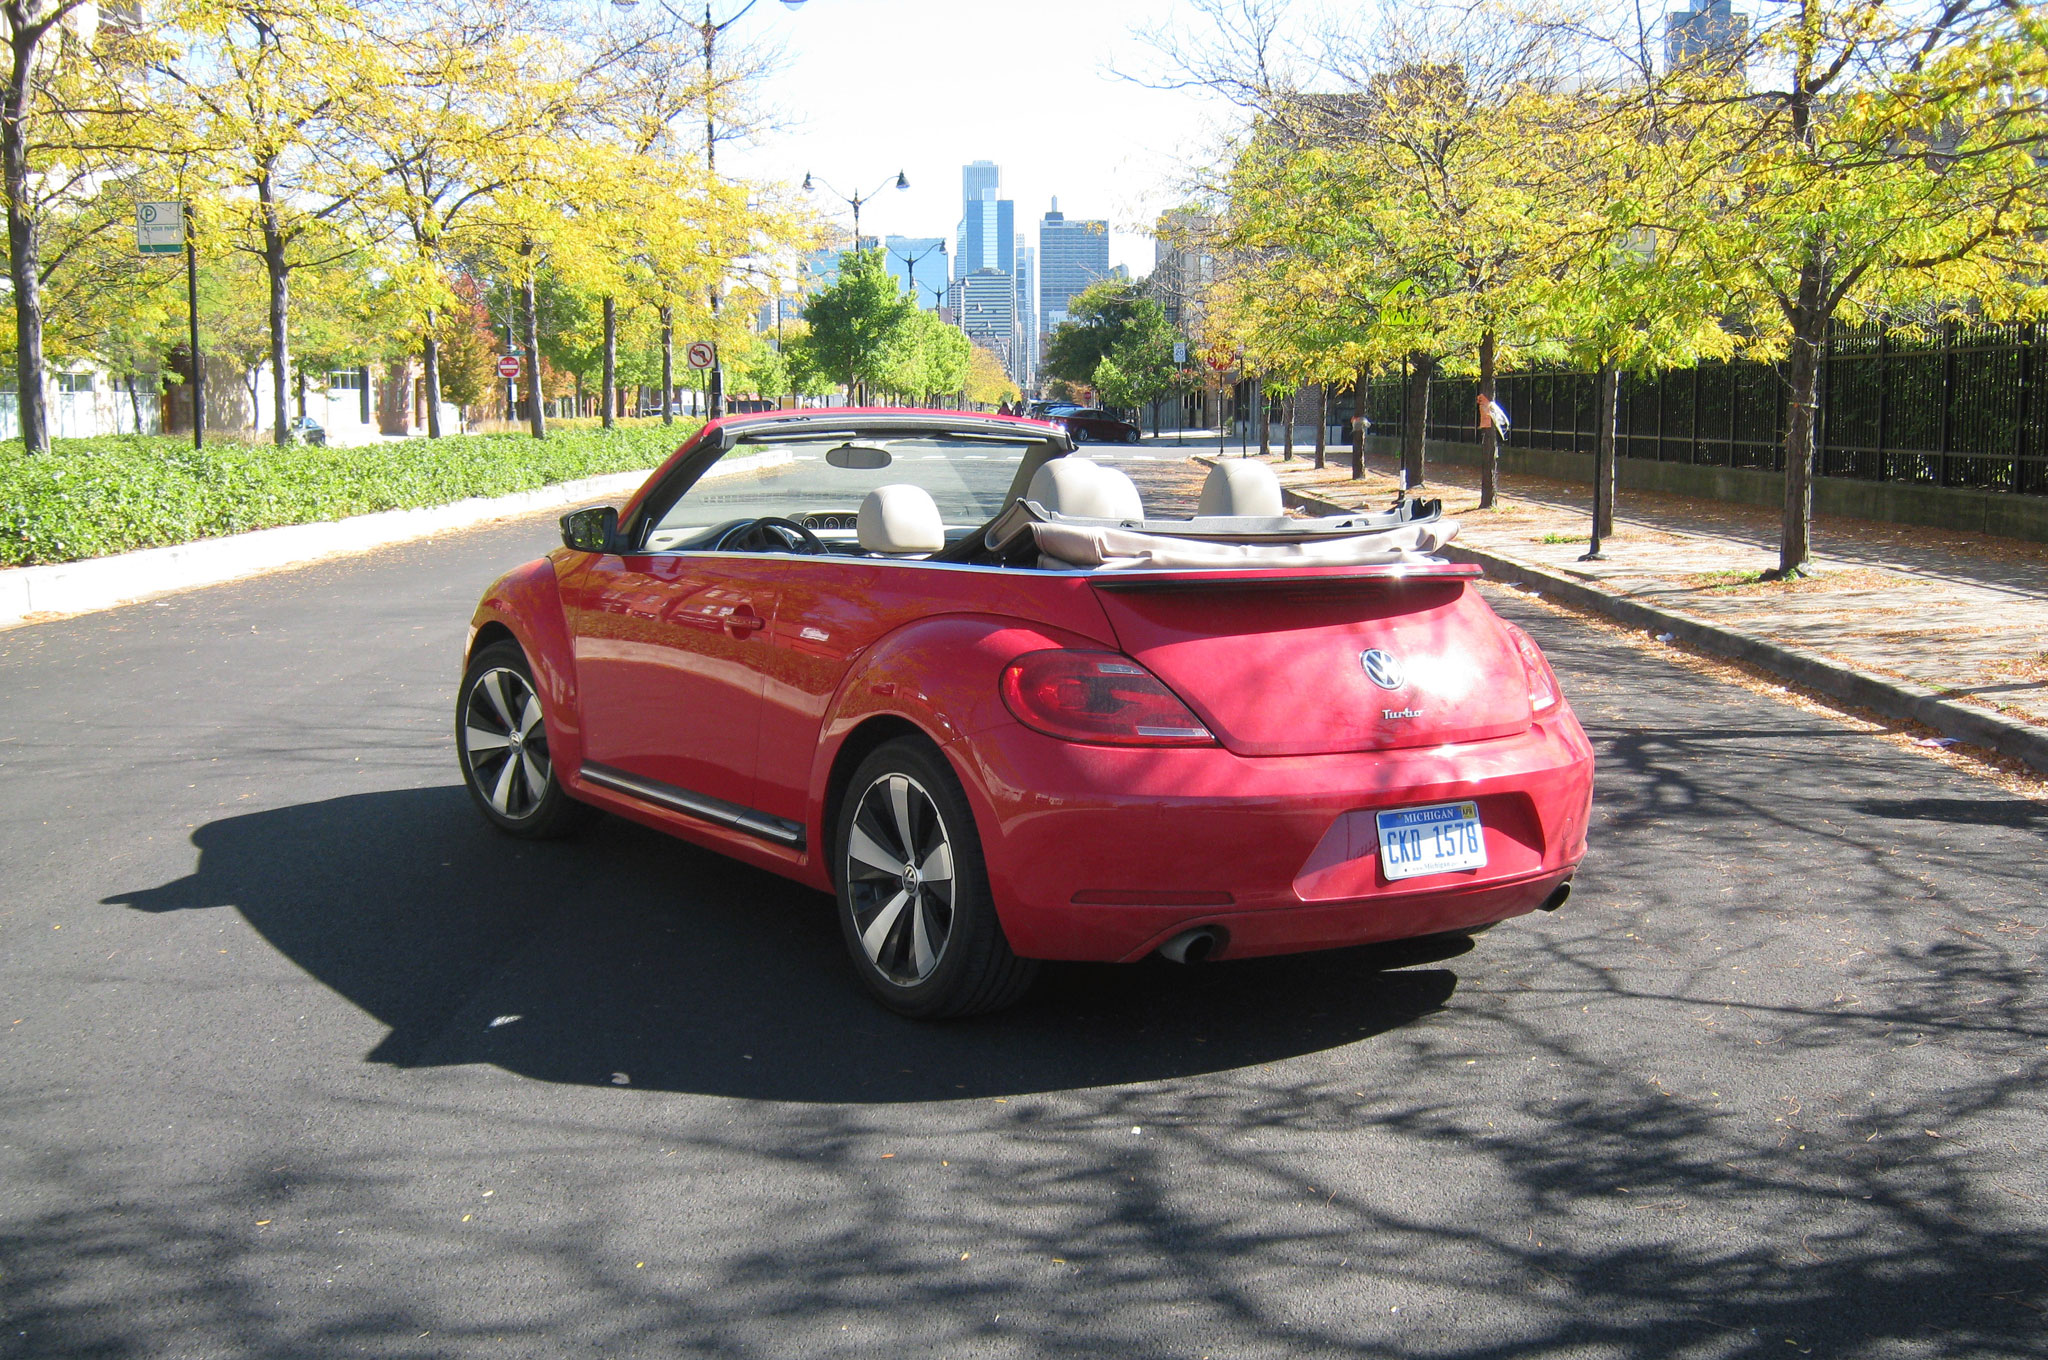 2013 Volkswagen Beetle Turbo Convertible Rear Left View1